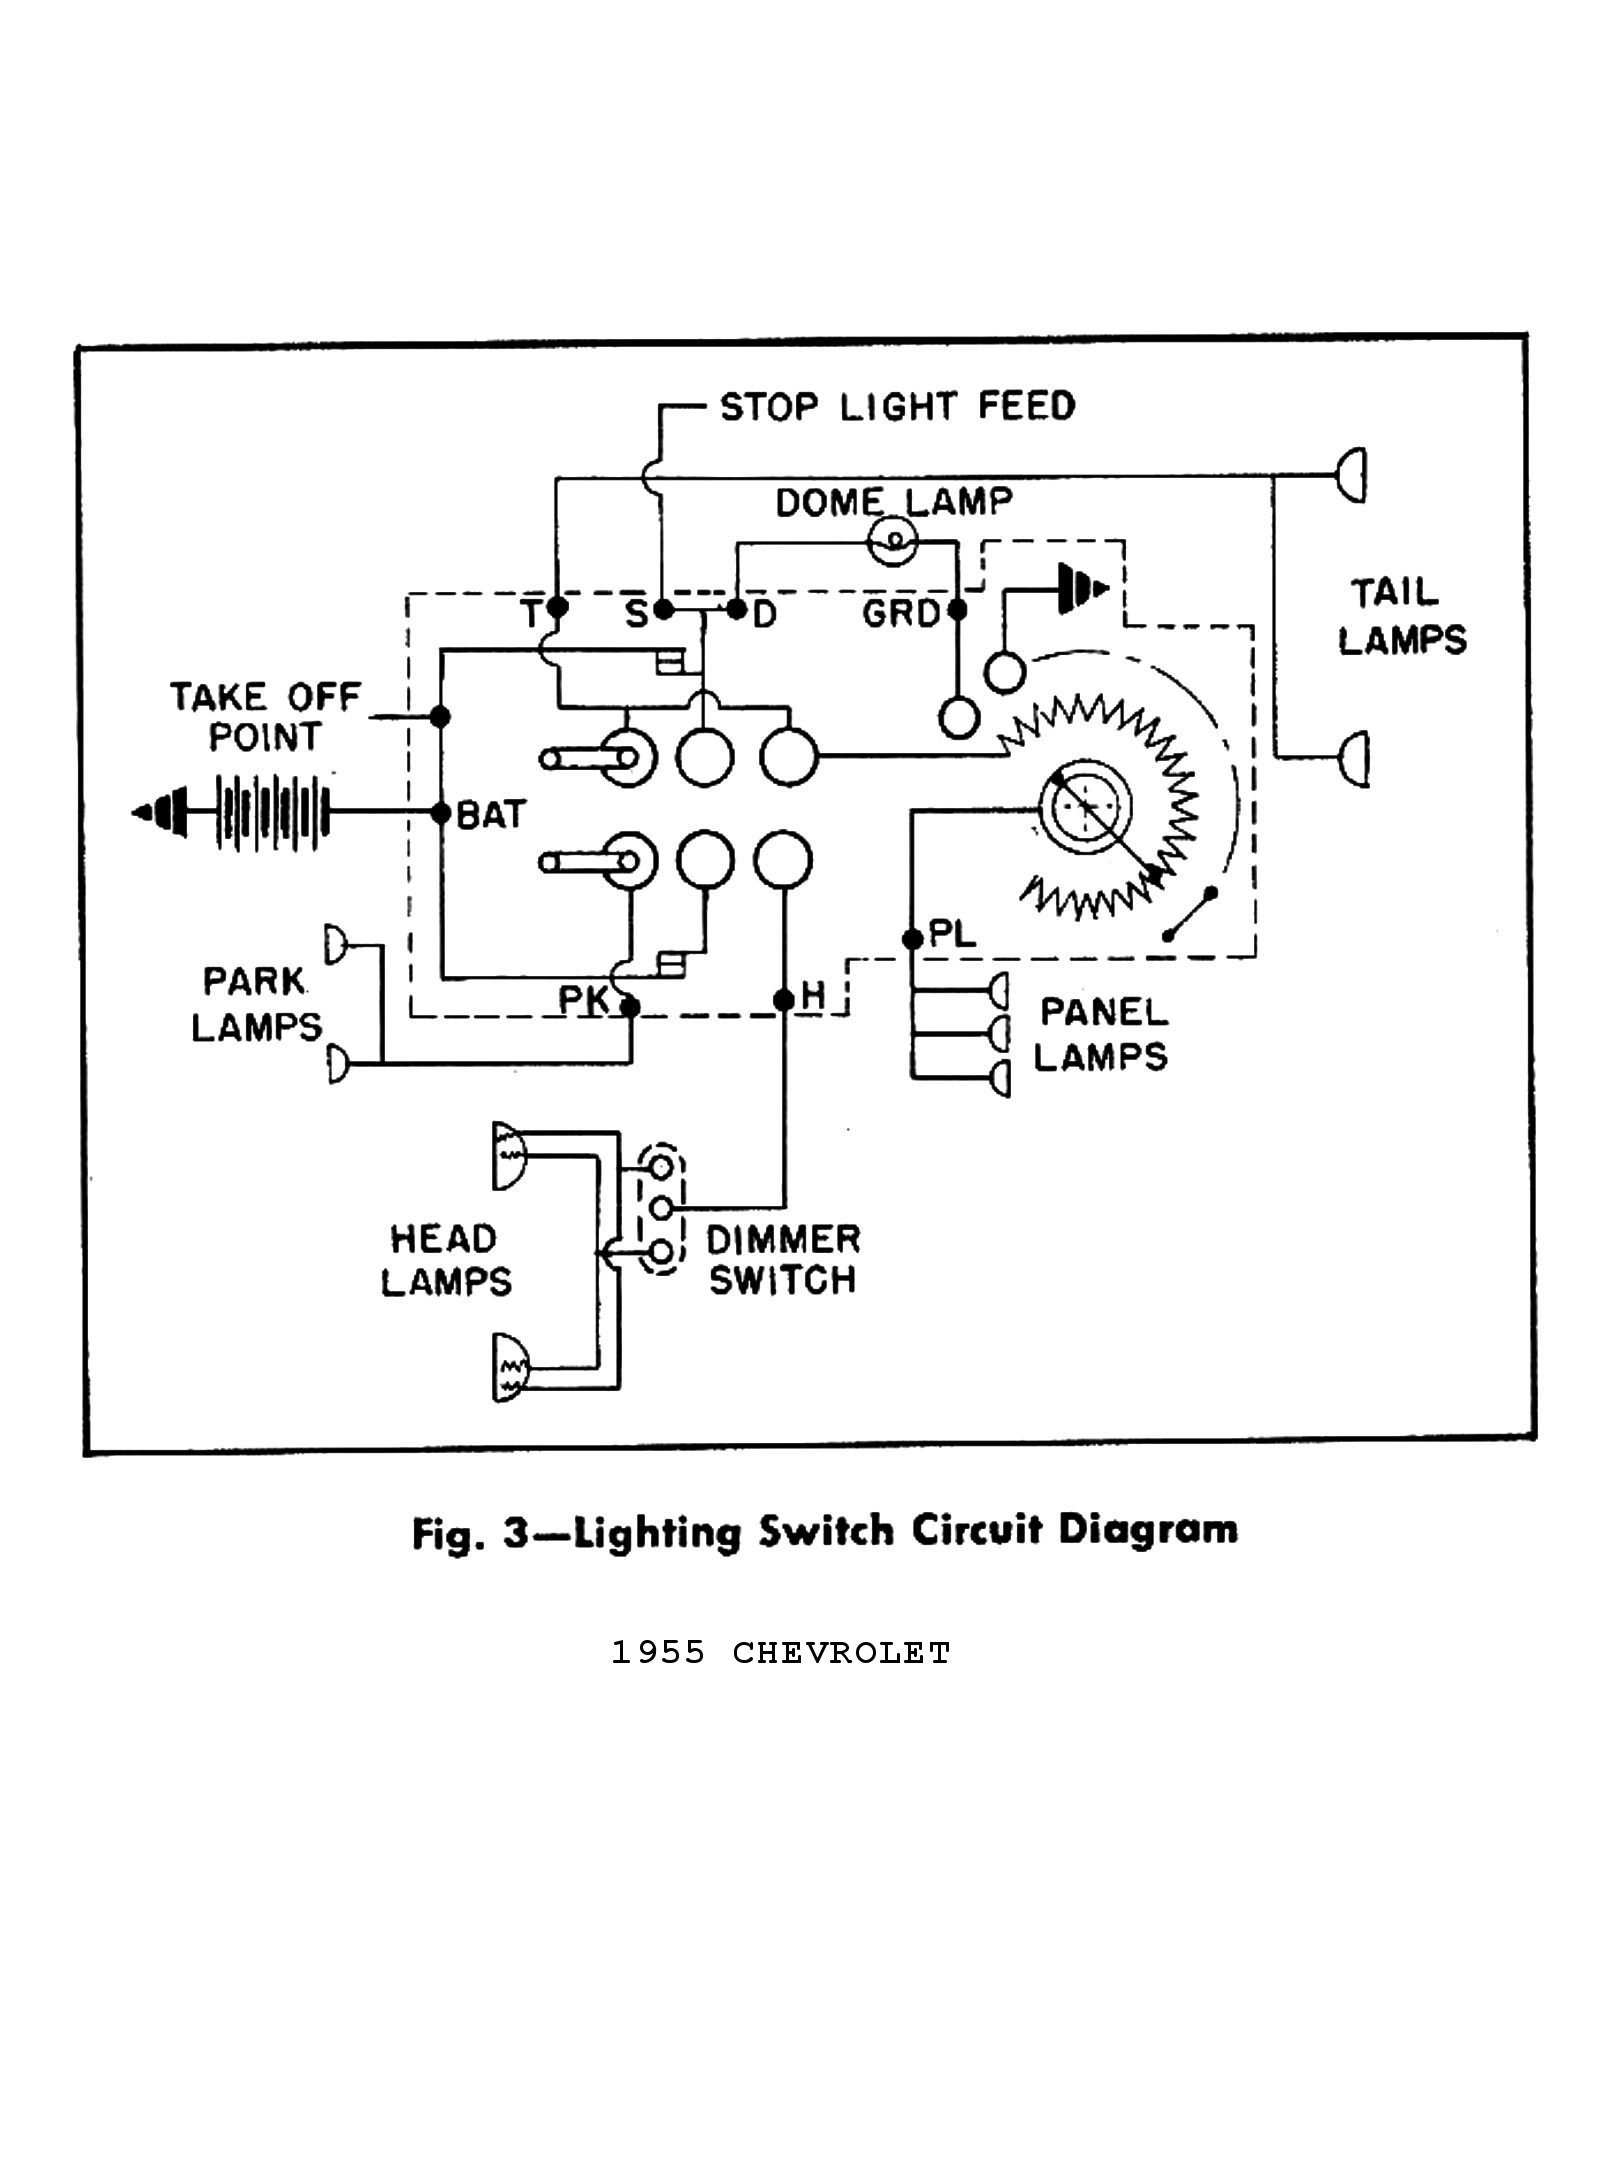 E0873 Jiuh Dah Electric Motor Wiring Diagrams | Digital Resources5.1.1.4.4.2.6.9.dba.skylink.hr